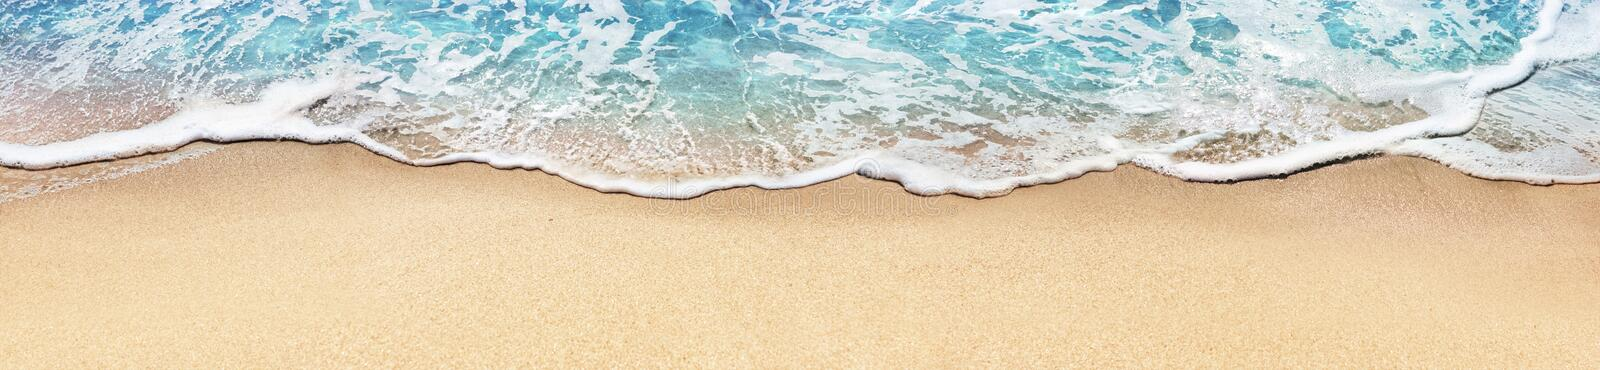 Aerial View Of Sandy Beach And Ocean royalty free stock photography